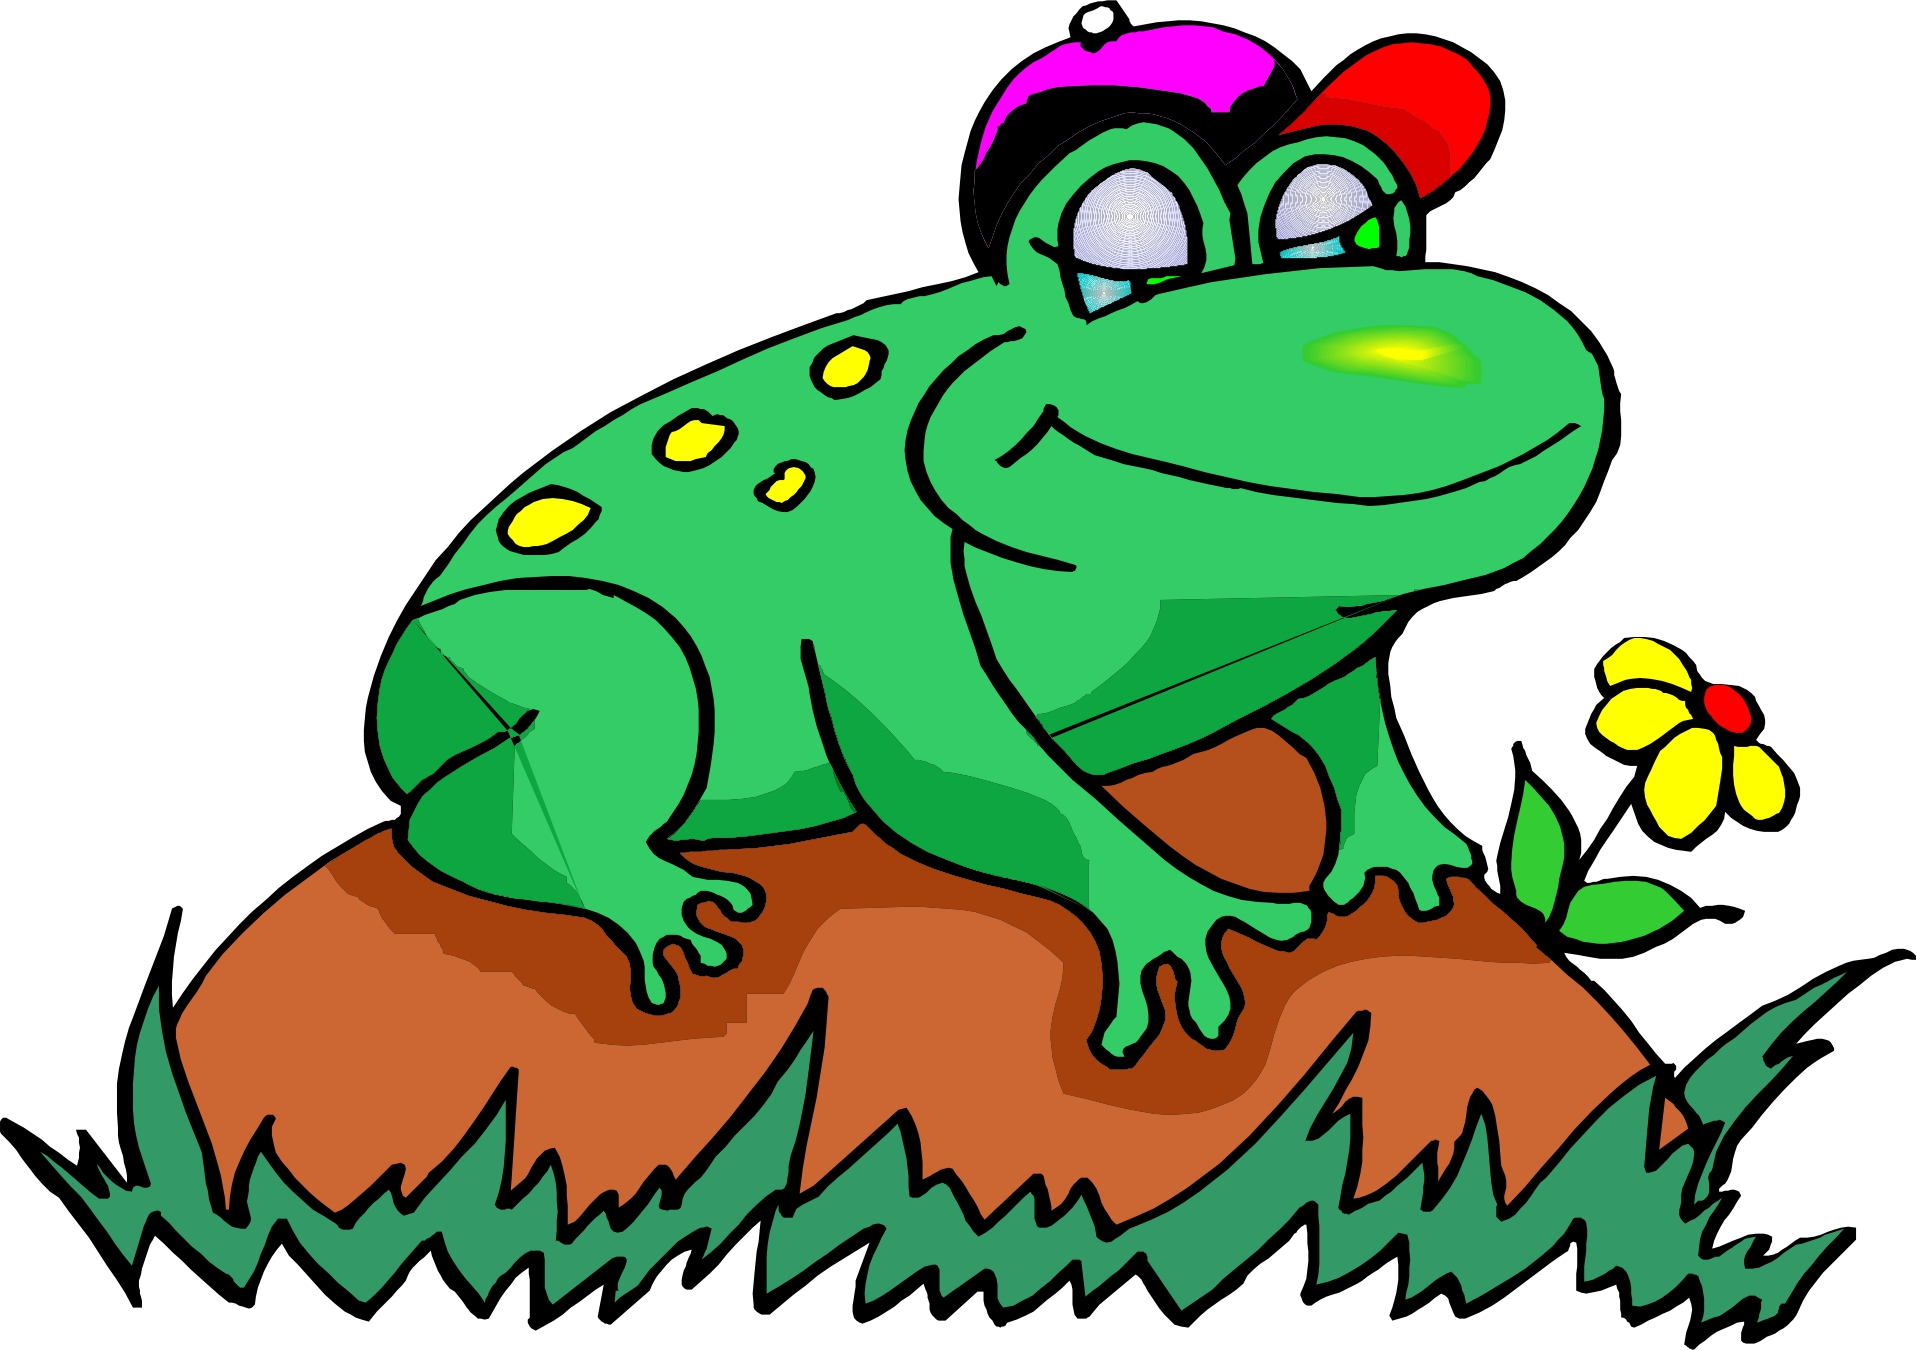 cartoon frogs page 3 clipart best clipart best clip art frog life cycle clip art frog outline